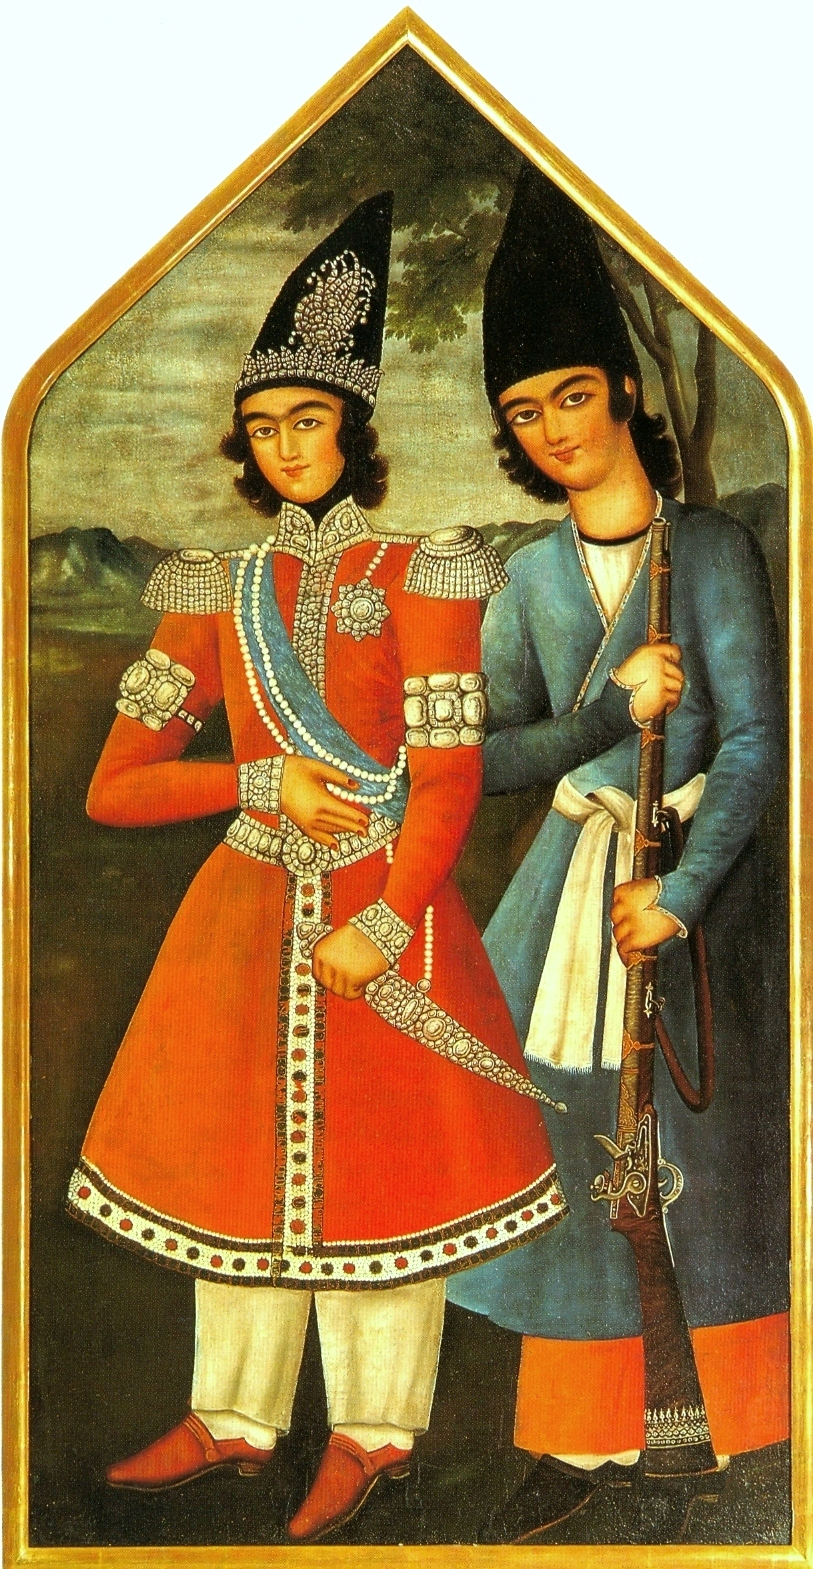 http://upload.wikimedia.org/wikipedia/commons/3/3c/A_Qajar_prince_and_his_attendant_1820.jpg